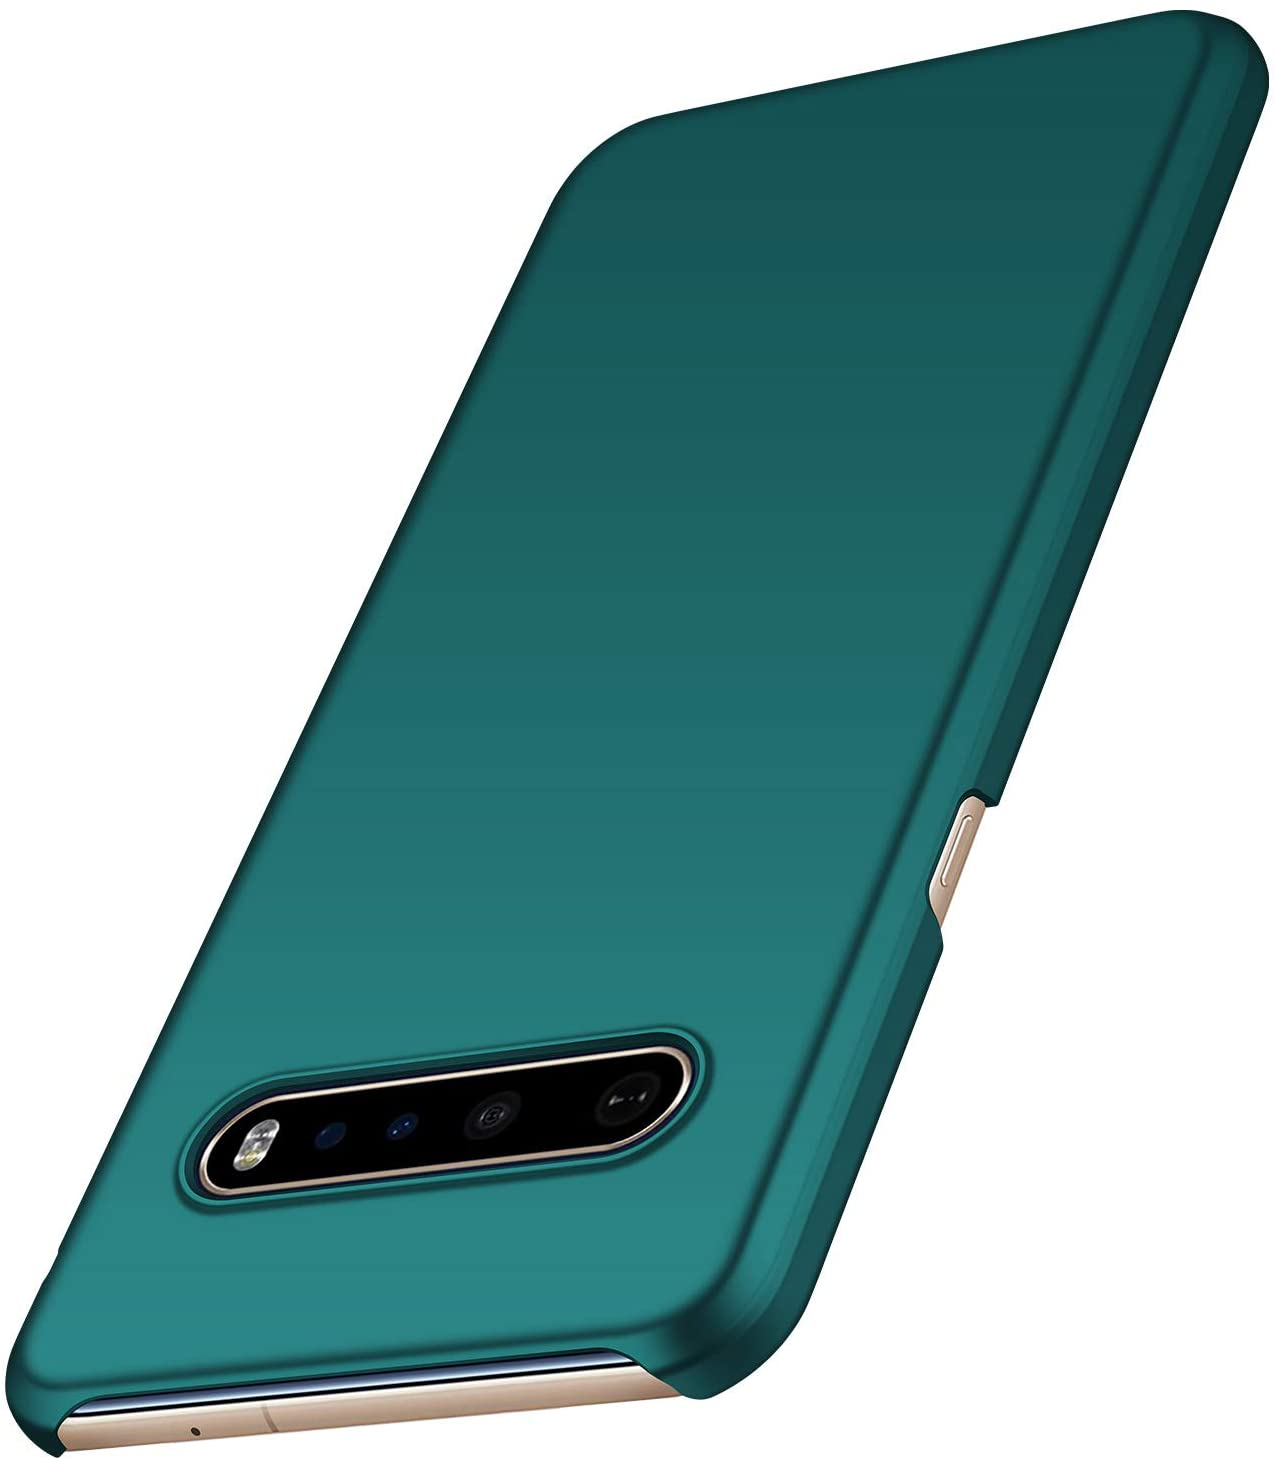 anccer Compatible for LG V60 ThinQ Case [Ultra-Thin] [Anti-Drop] New Premium Material Slim Full Protection Cover for LG V60 ThinQ 5G (Green)